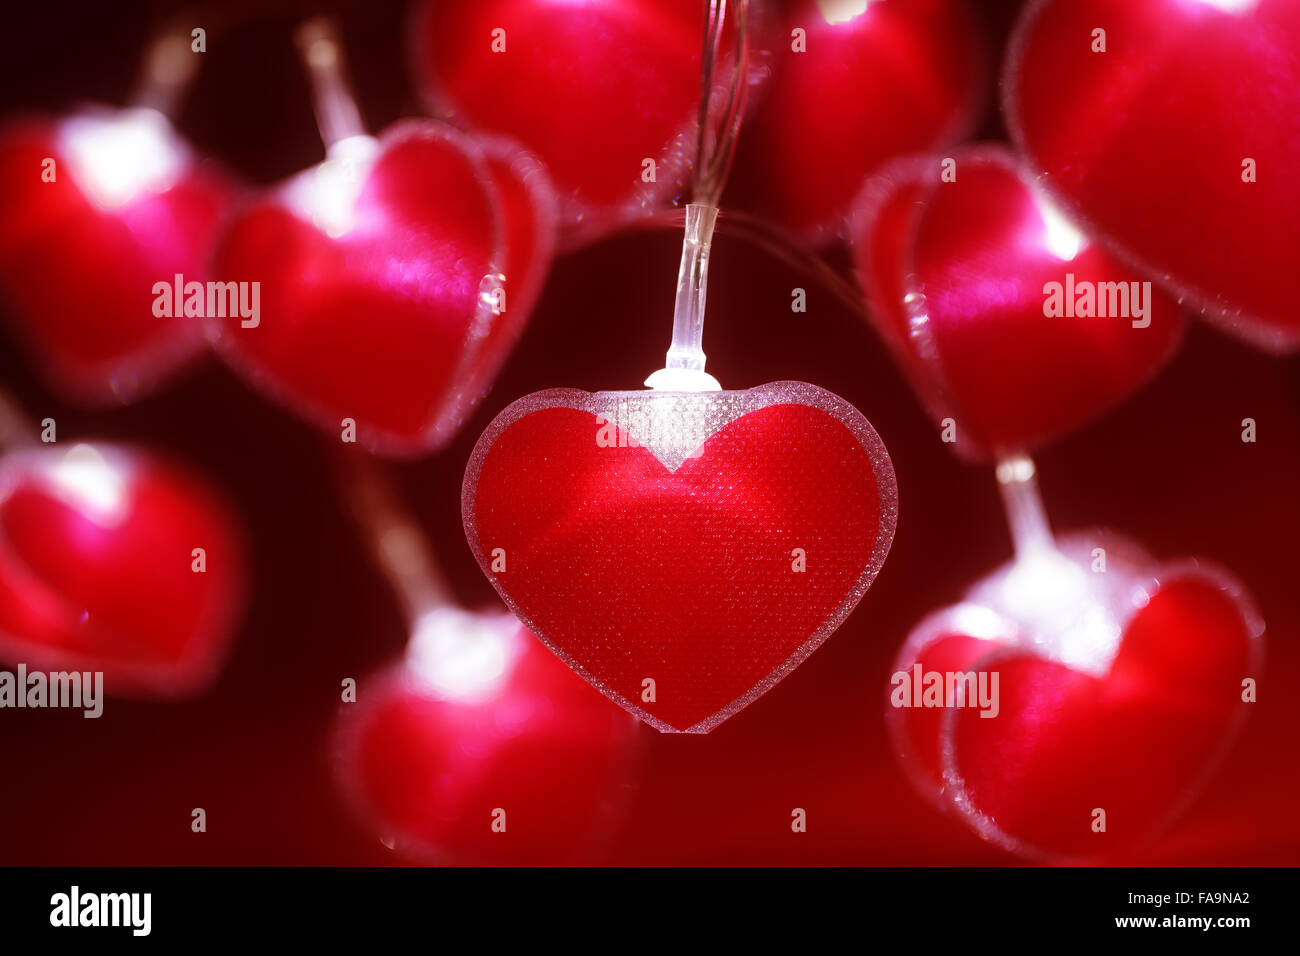 Red Heart fairy lights Valentine's day background Photo Stock